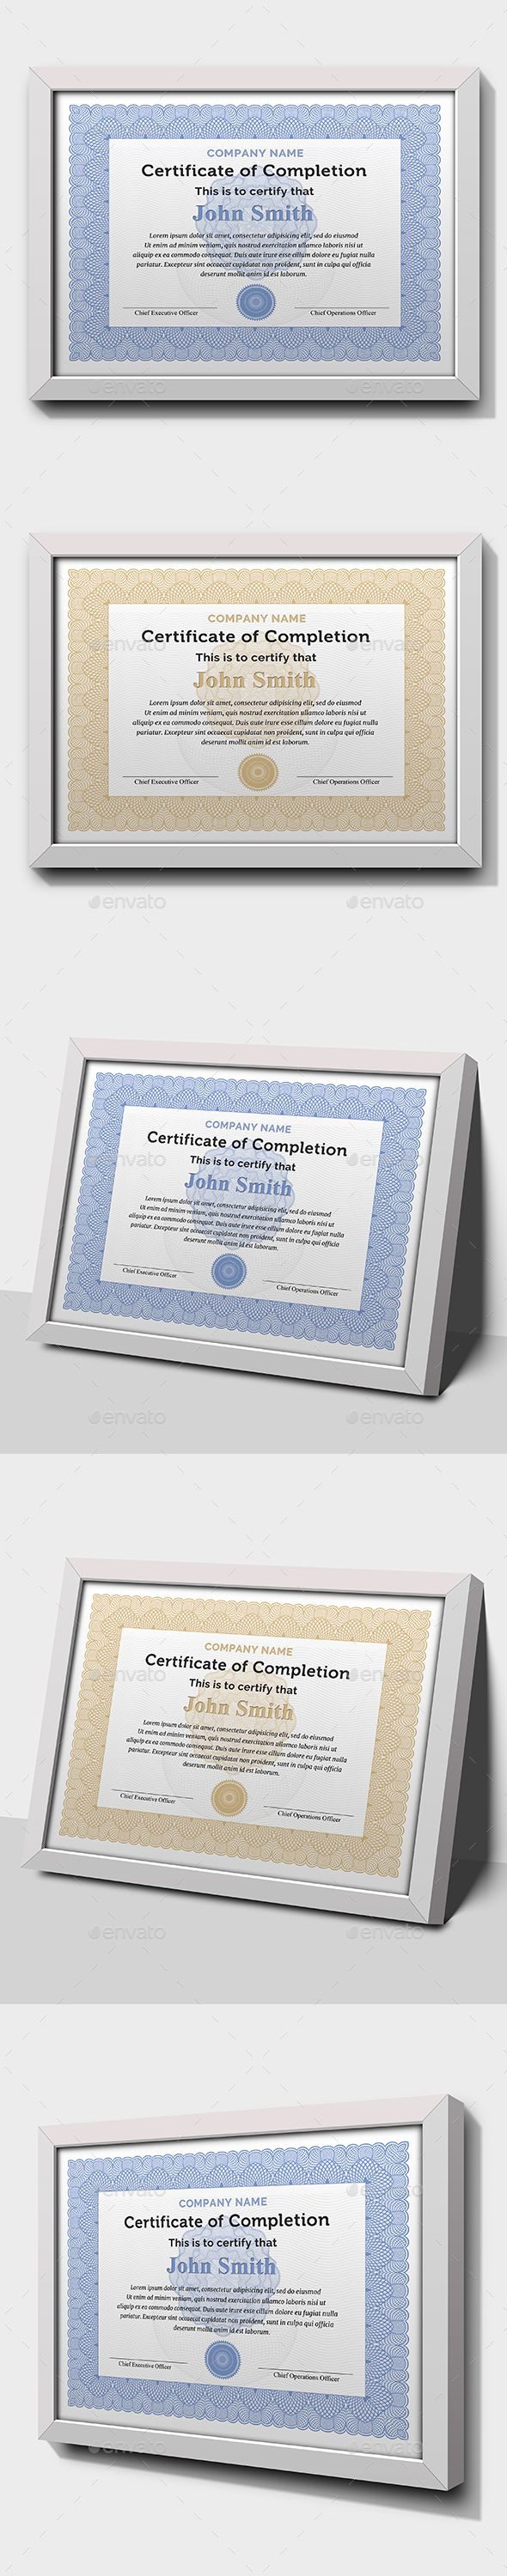 Multipurpose Certificate - Certificate Template PSD. Download here: http://graphicriver.net/item/multipurpose-certificate/14442743?s_rank=68&ref=yinkira